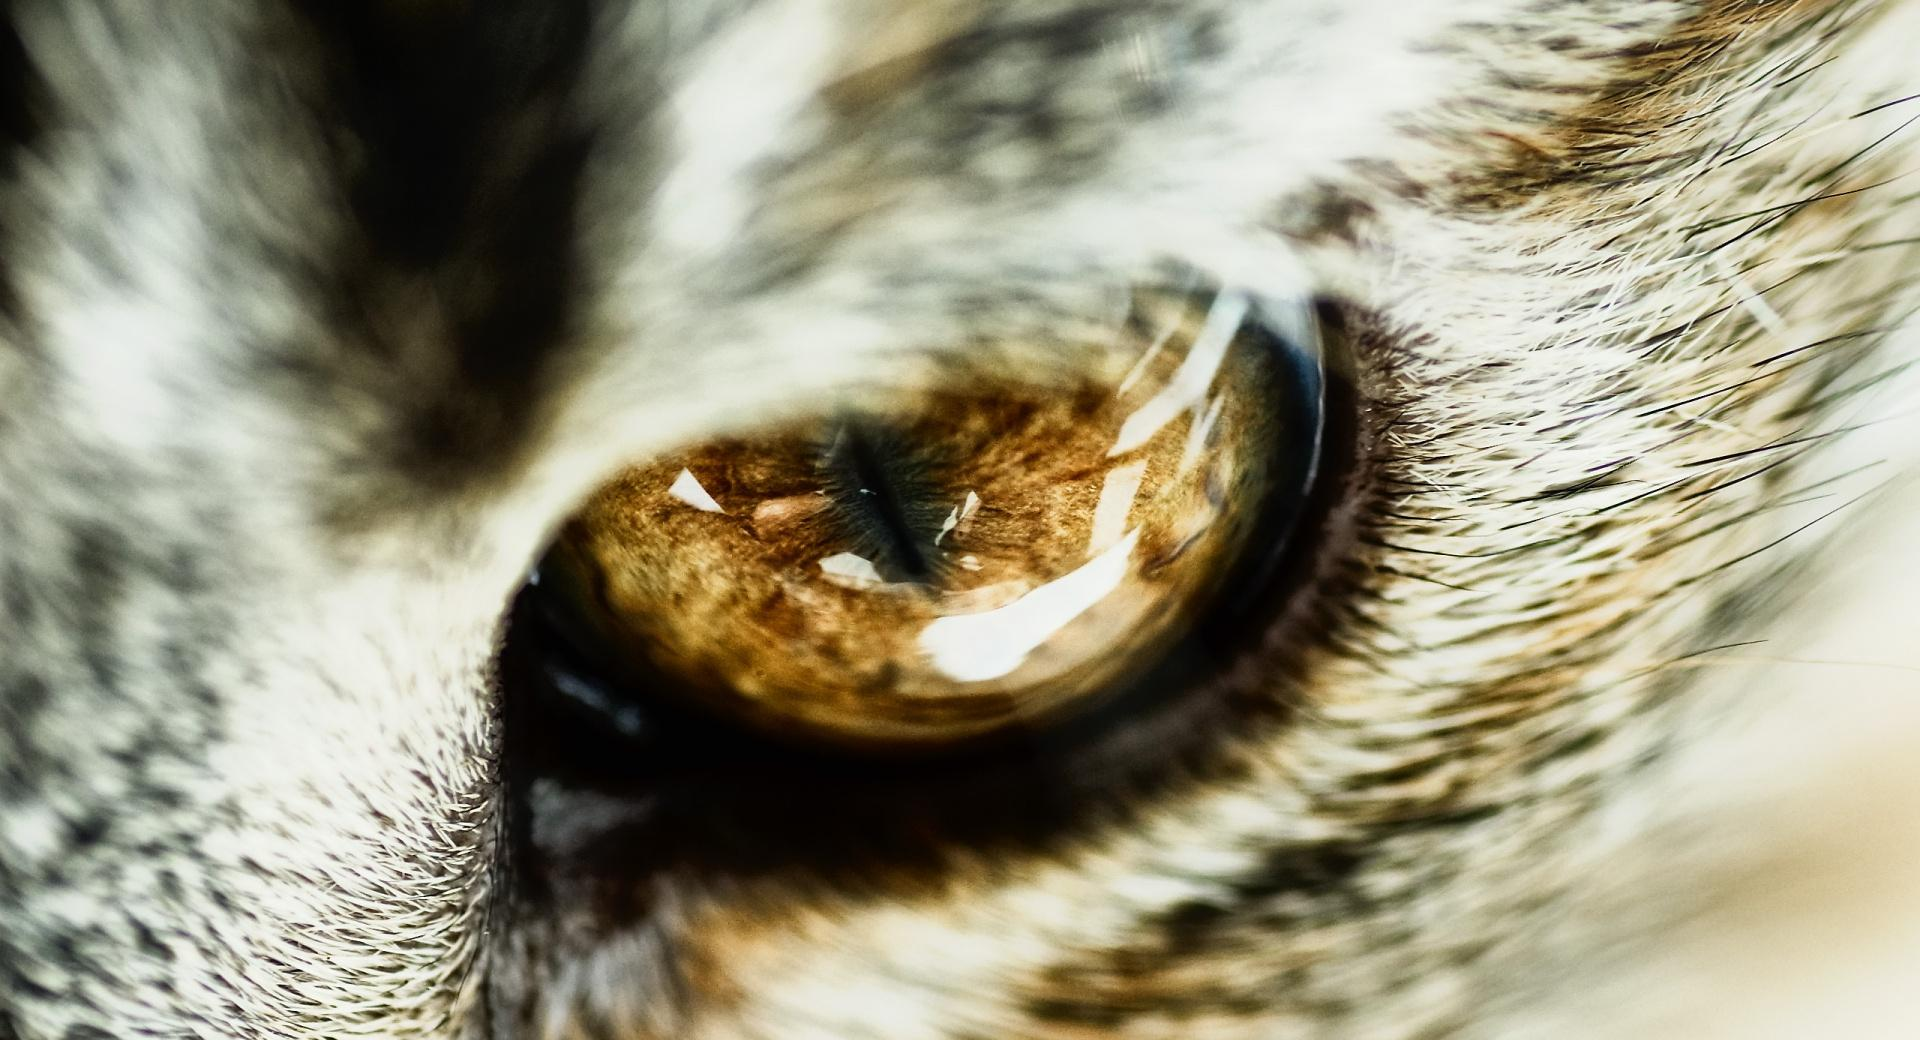 Cat Eye Close Up wallpapers HD quality